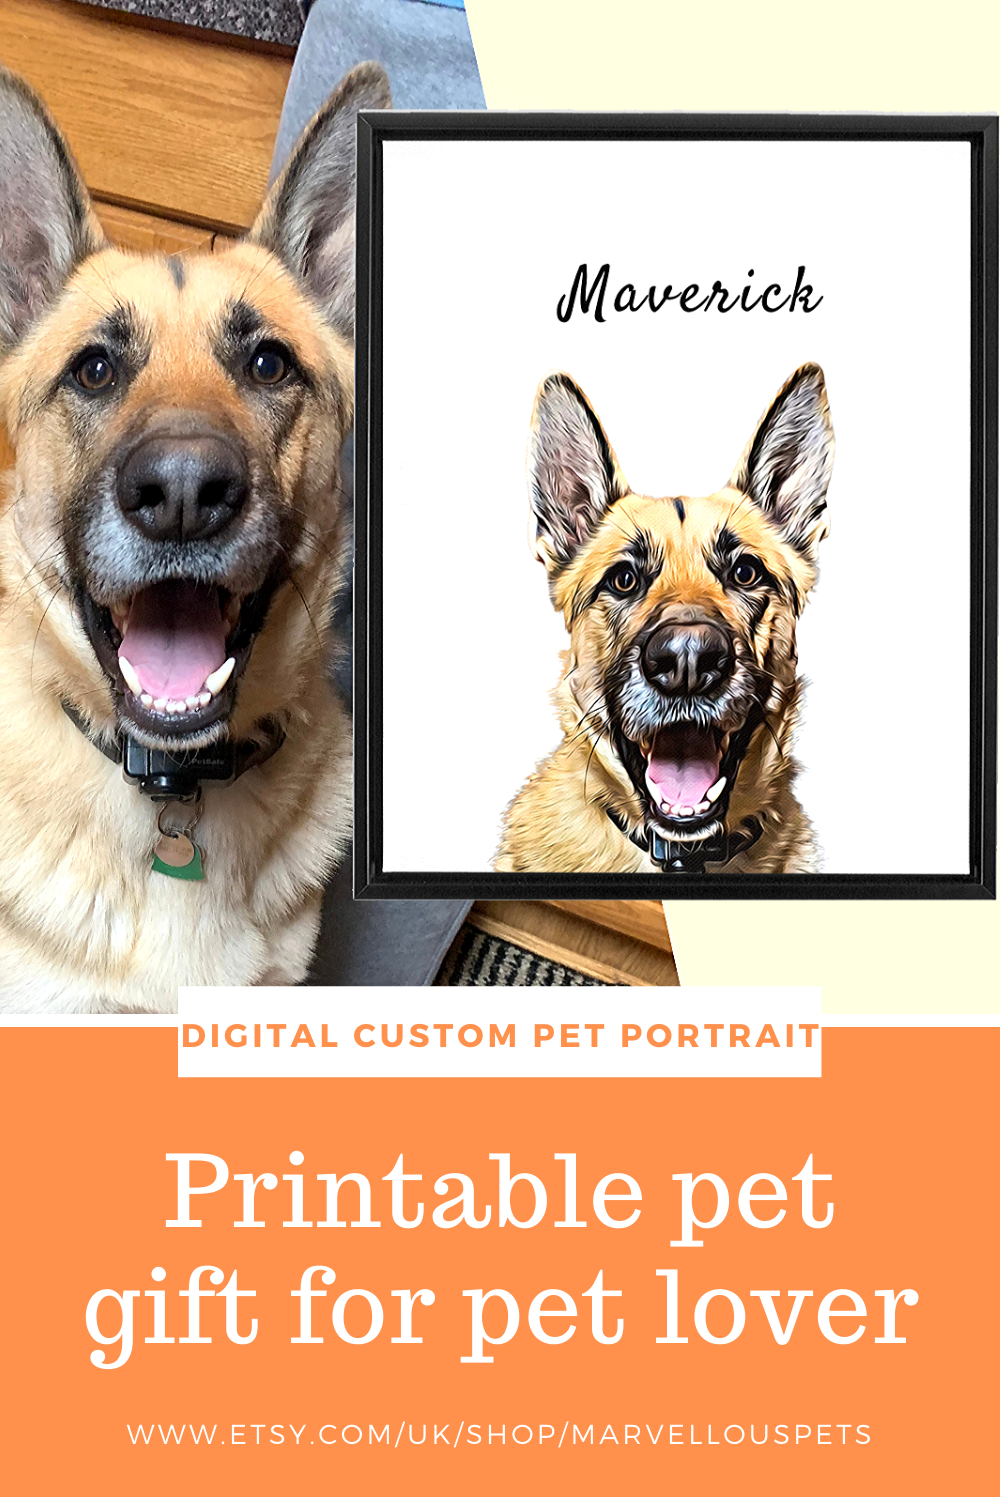 Printable custom printable pet illustration portrait for dog lover gift or fathers day gift.